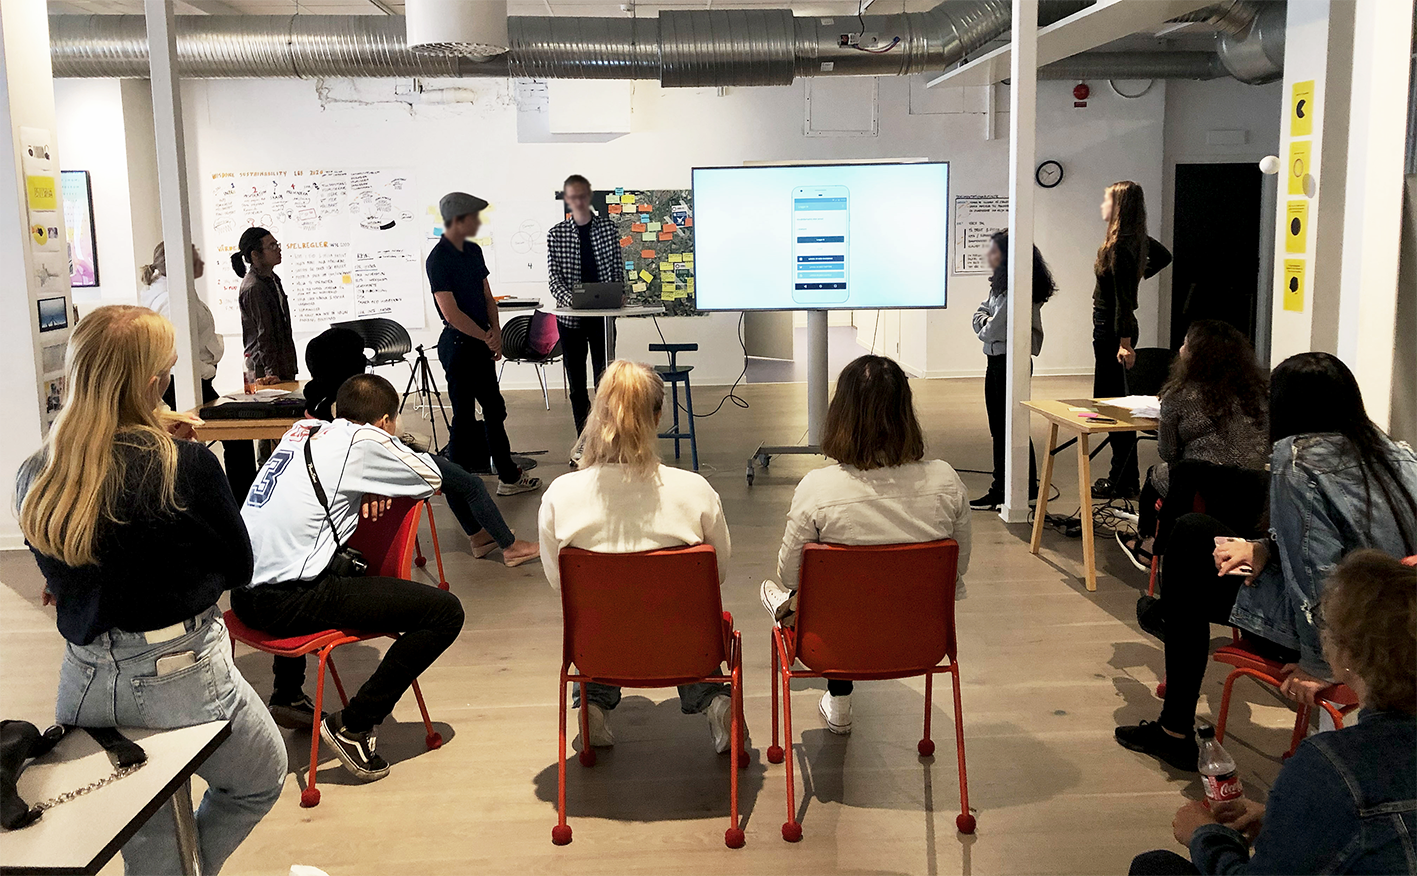 People sitting in a workspace and looking at a presentation